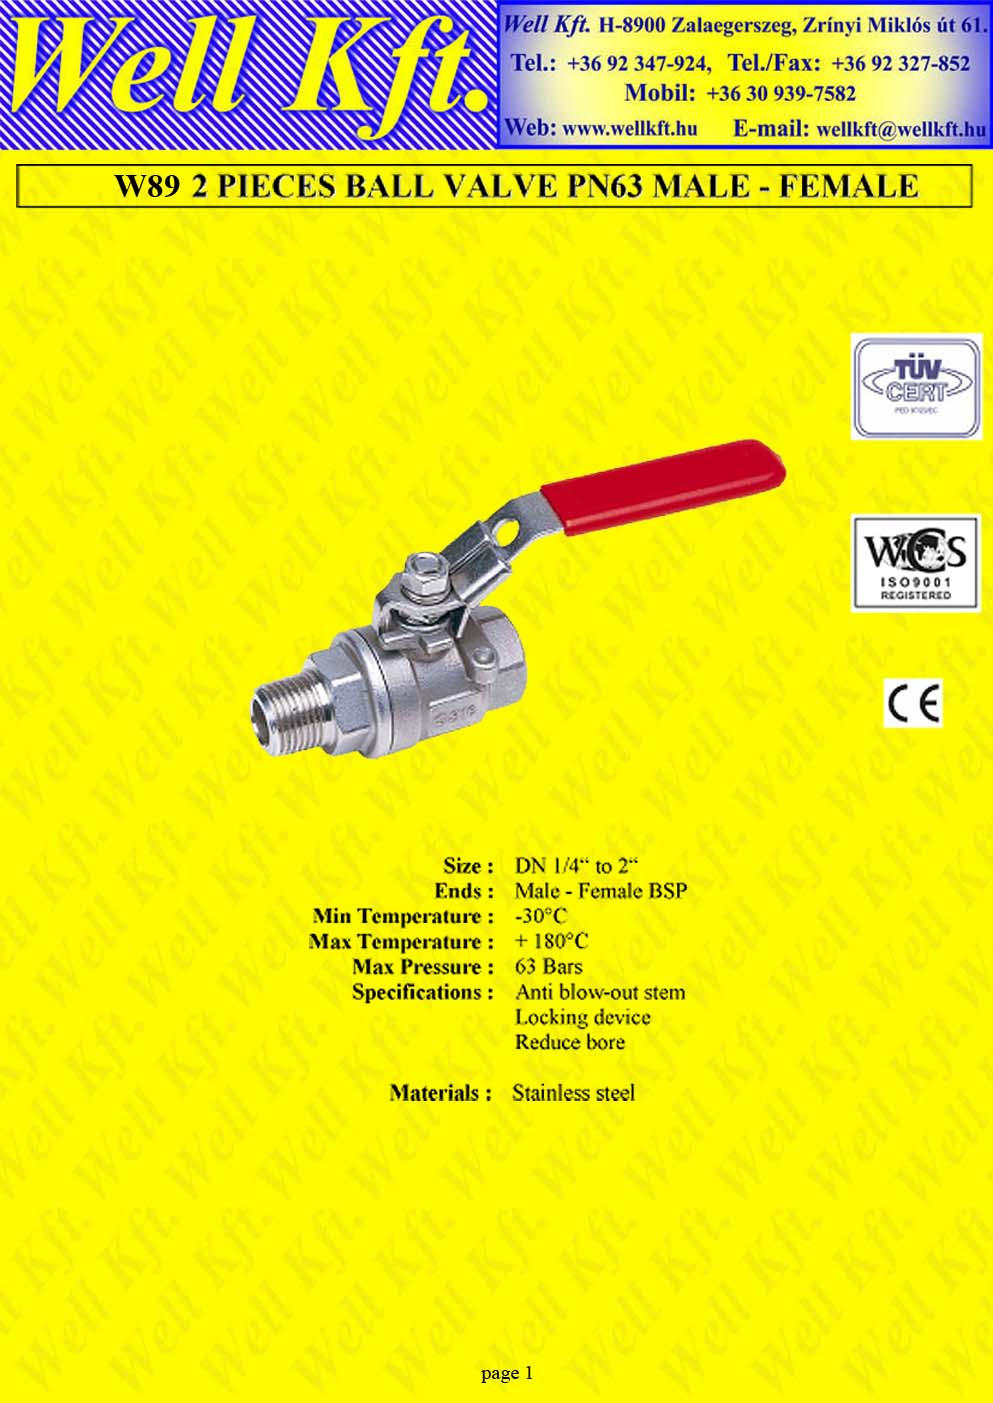 2 pieces ball valve stainless steel, male-female (1.)